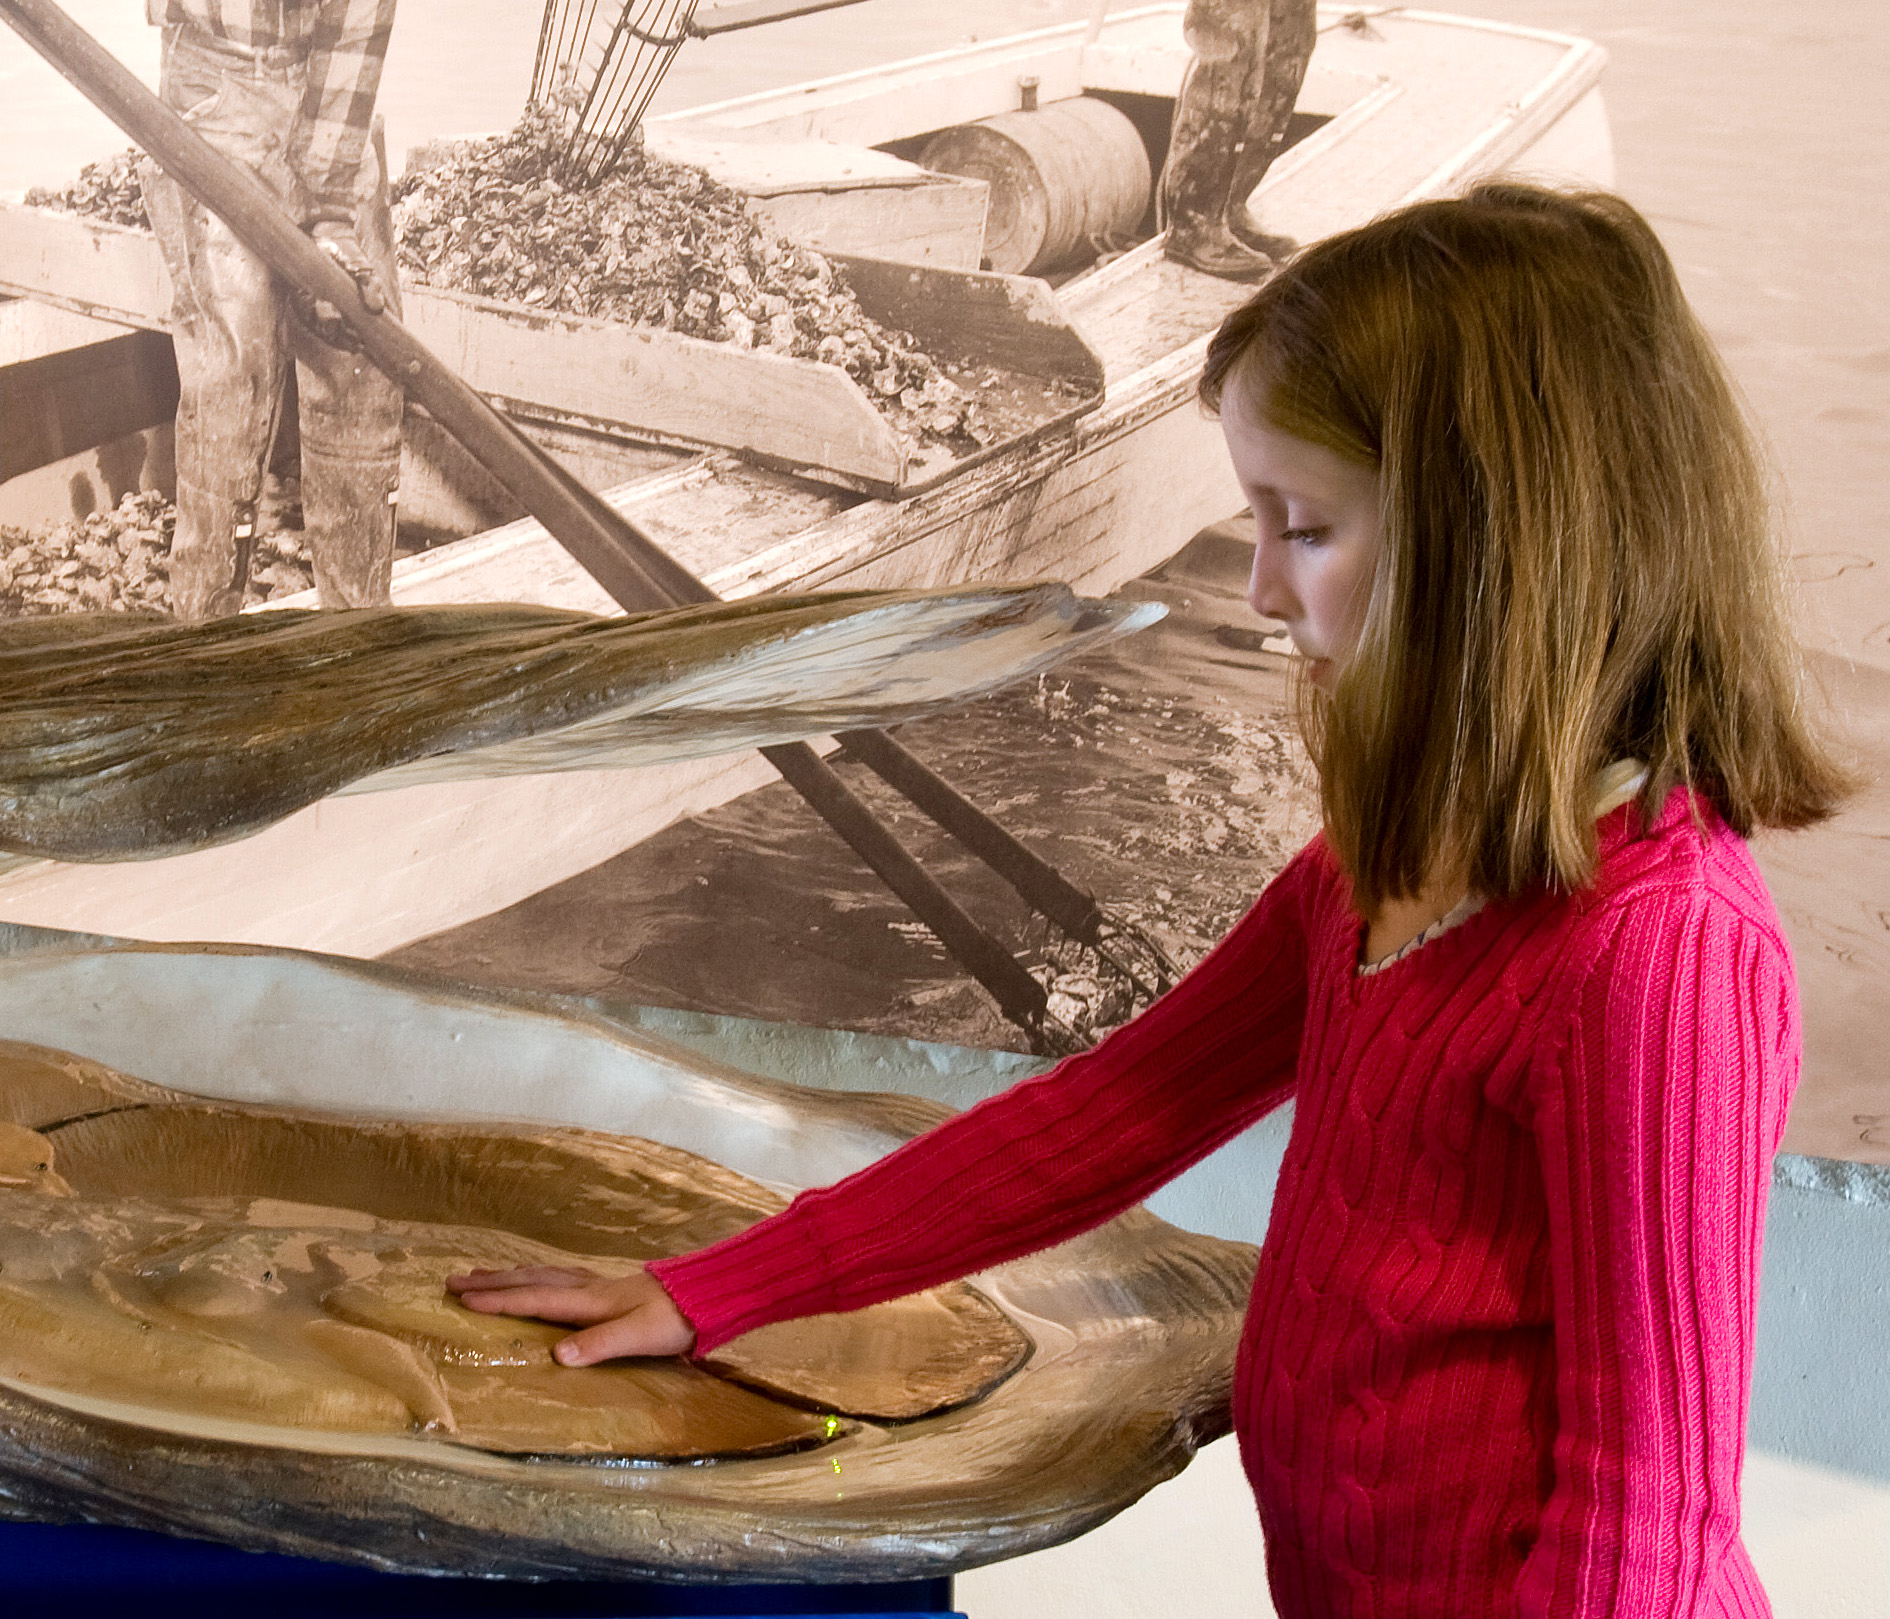 Project image 1 for Oysters on the Half Shell Exhibit, Annapolis Maritime Museum